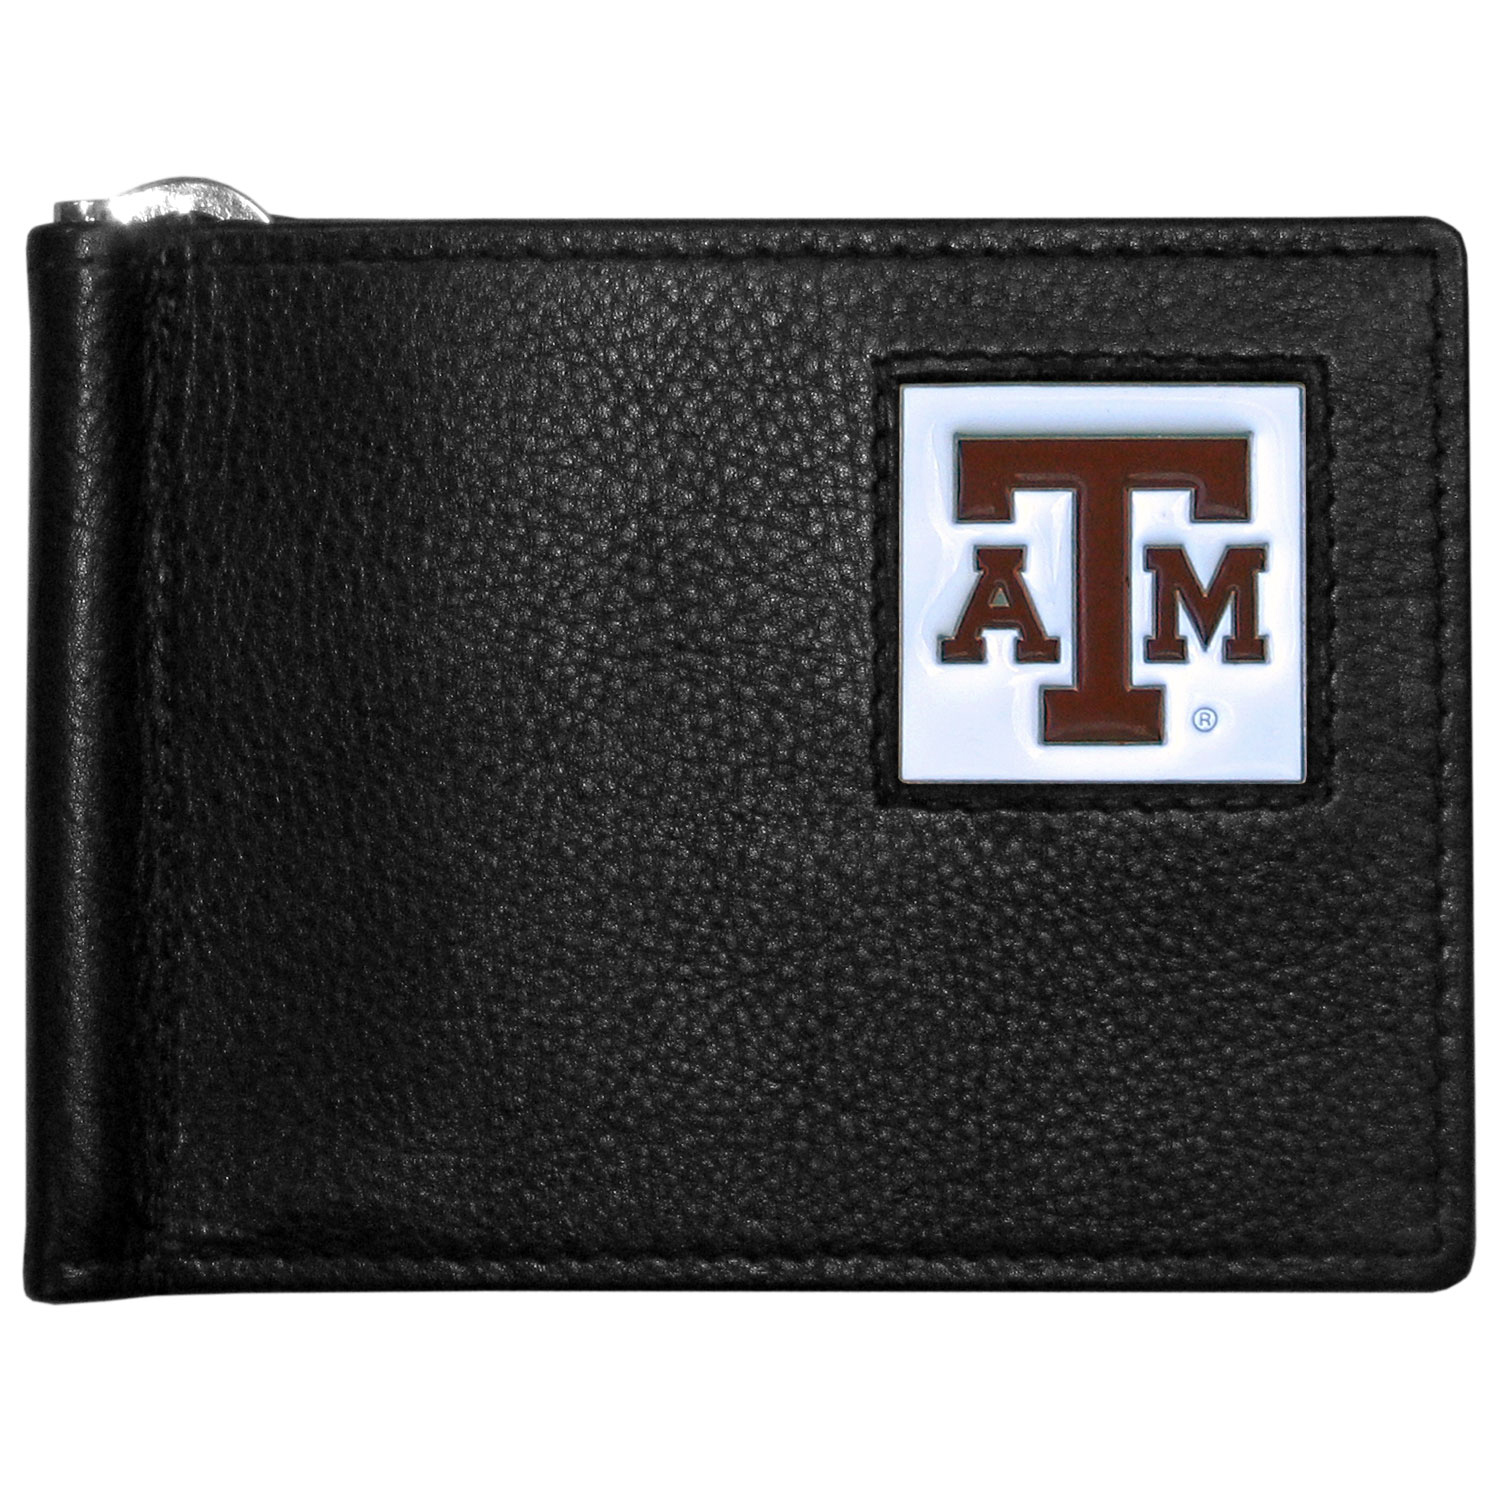 Texas A and M Aggies Leather Bill Clip Wallet - This cool new style wallet features an inner, metal bill clip that lips up for easy access. The super slim wallet holds tons of stuff with ample pockets, credit card slots & windowed ID slot. The wallet is made of genuine fine grain leather and it finished with a metal Texas A & M Aggies emblem. The wallet is shipped in gift box packaging.